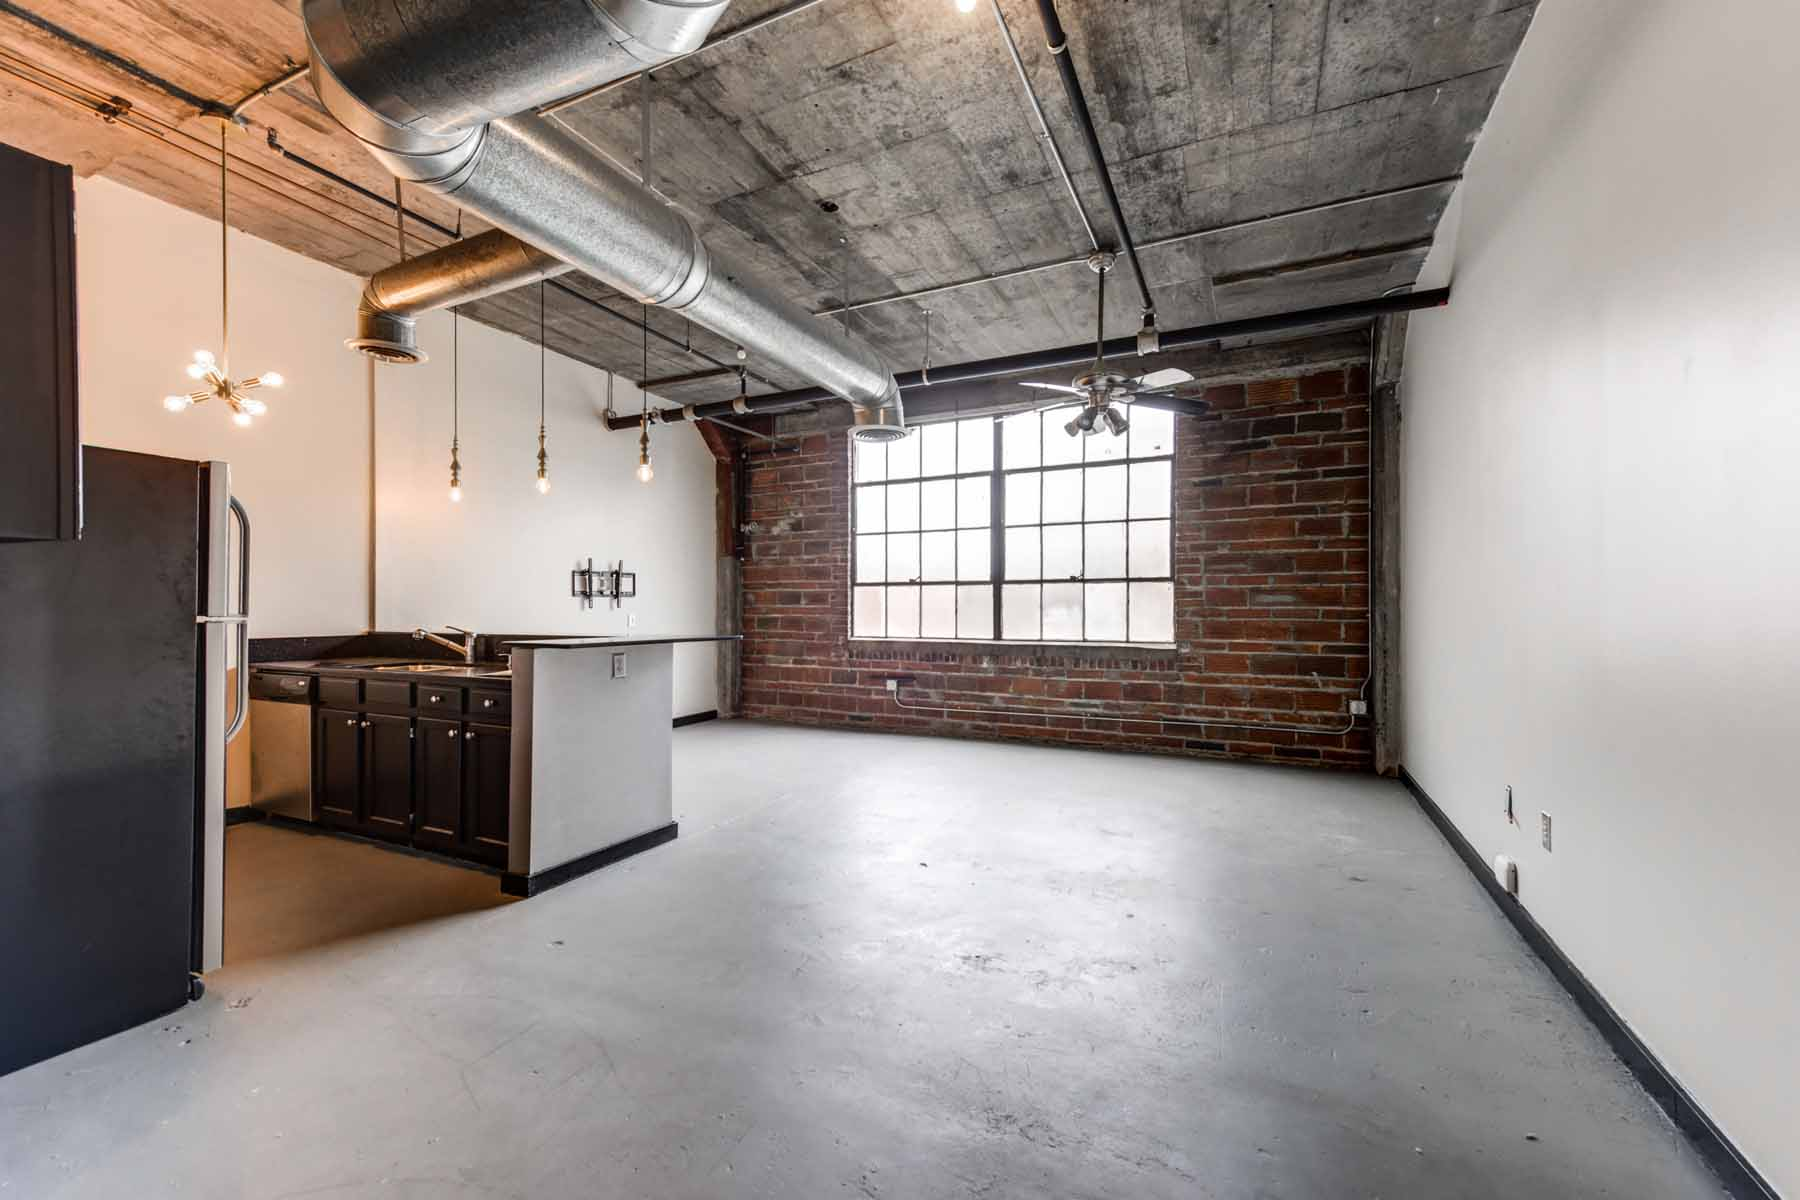 Single Family Home for Rent at Cool Loft in Castleberry Hill!! 172 Haynes Street SW Atlanta, Georgia 30313 United States